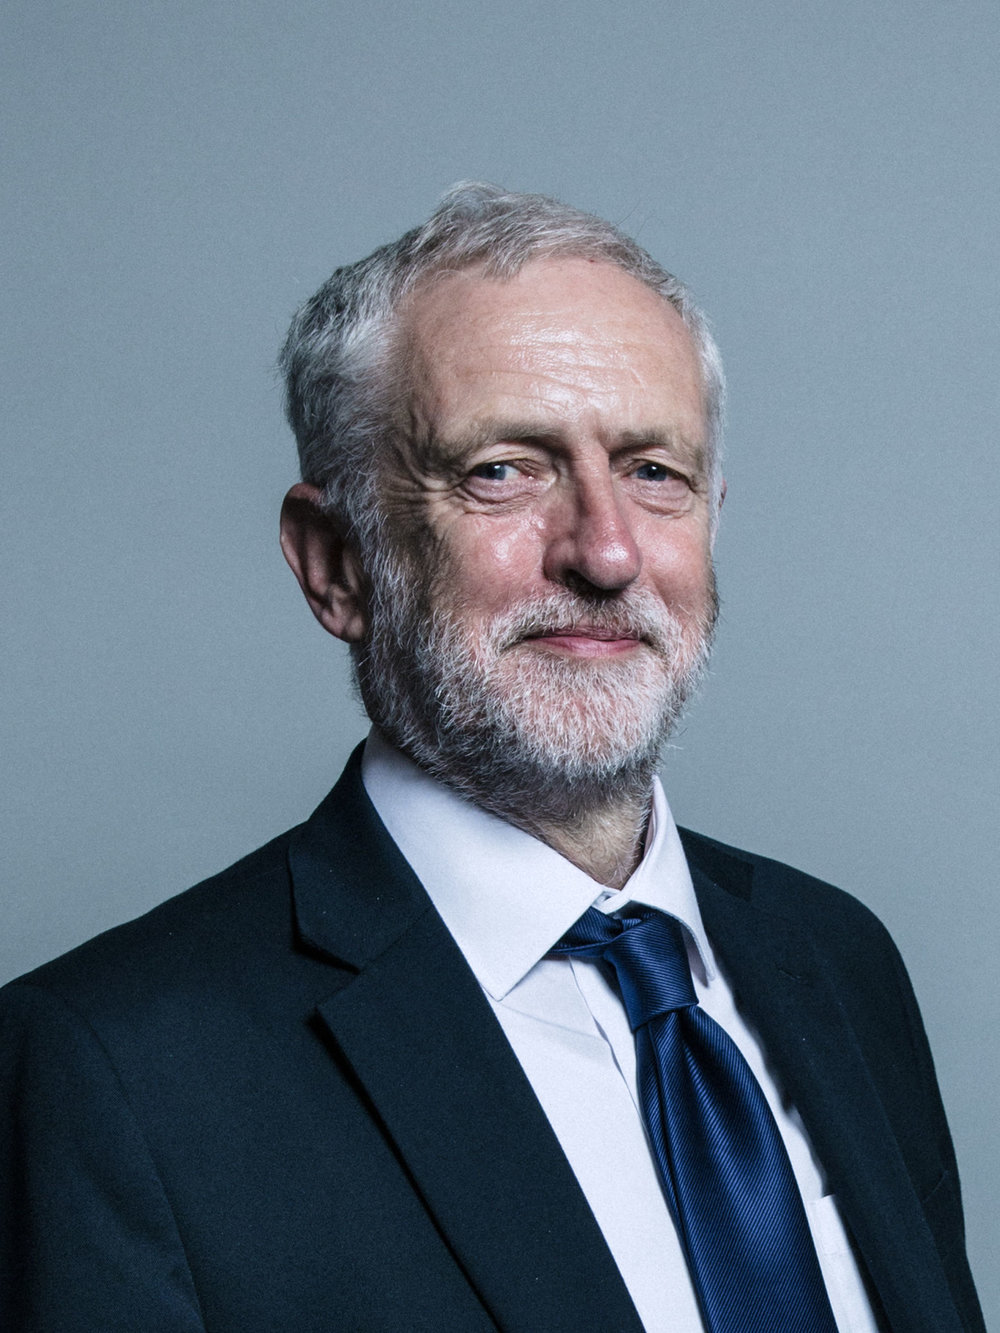 JEREMY CORBYN MP   MP for Islington North and  Leader of the Labour Party